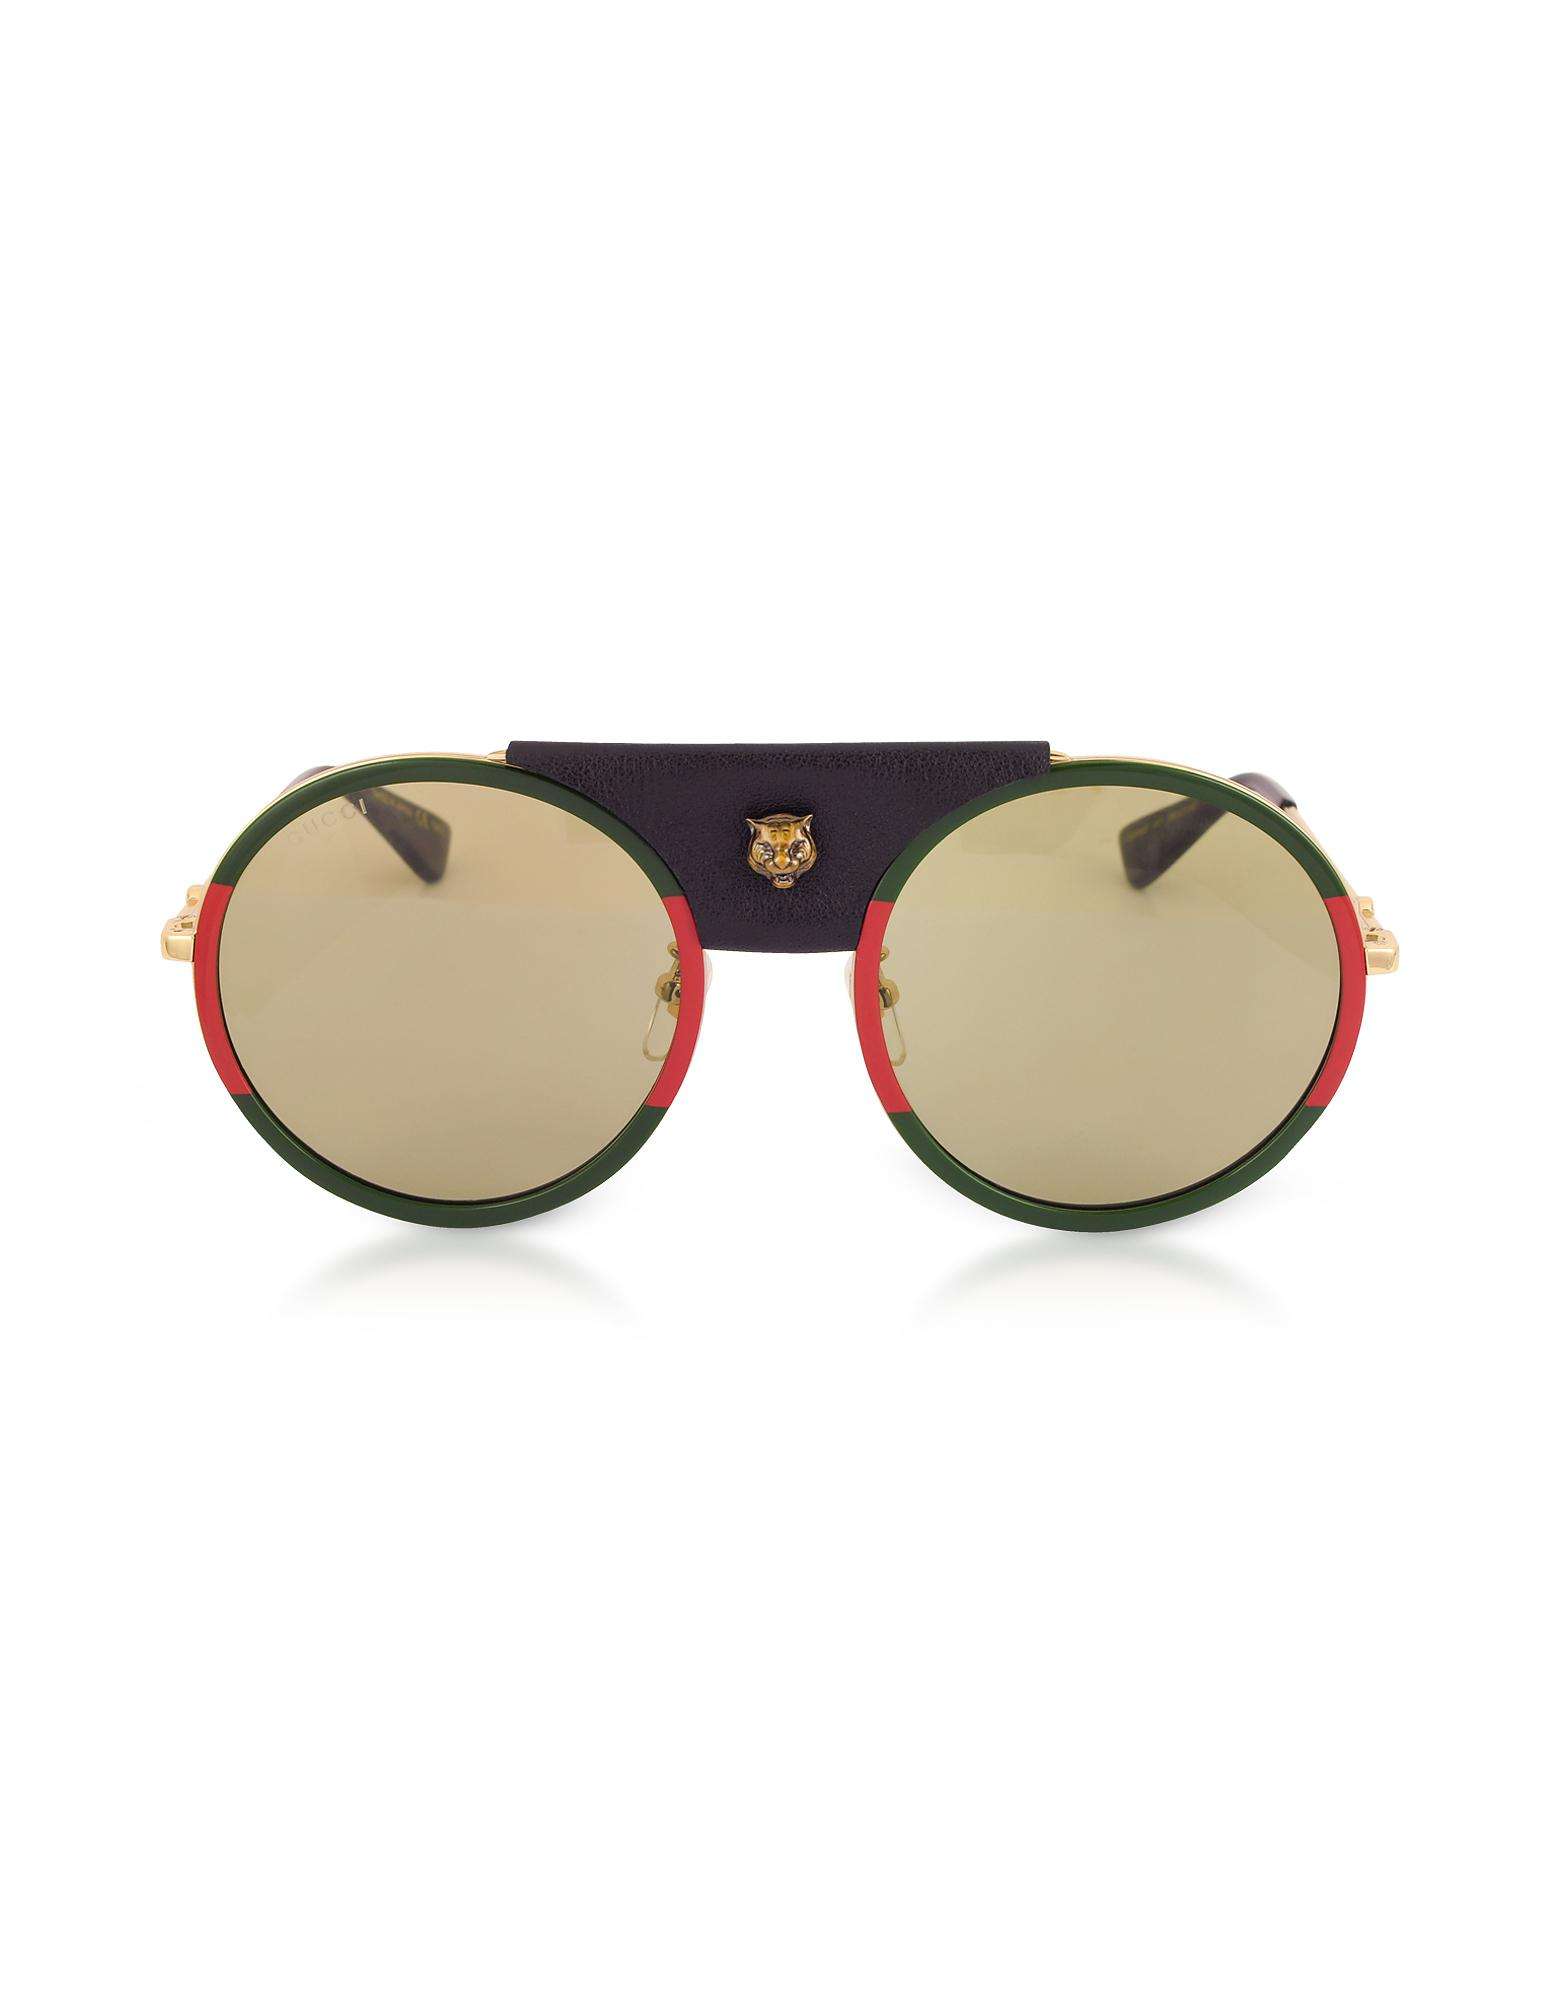 5ff9338388619 Gucci GG0061S Round-frame Gold Metal And Black Leather Sunglasses W ...